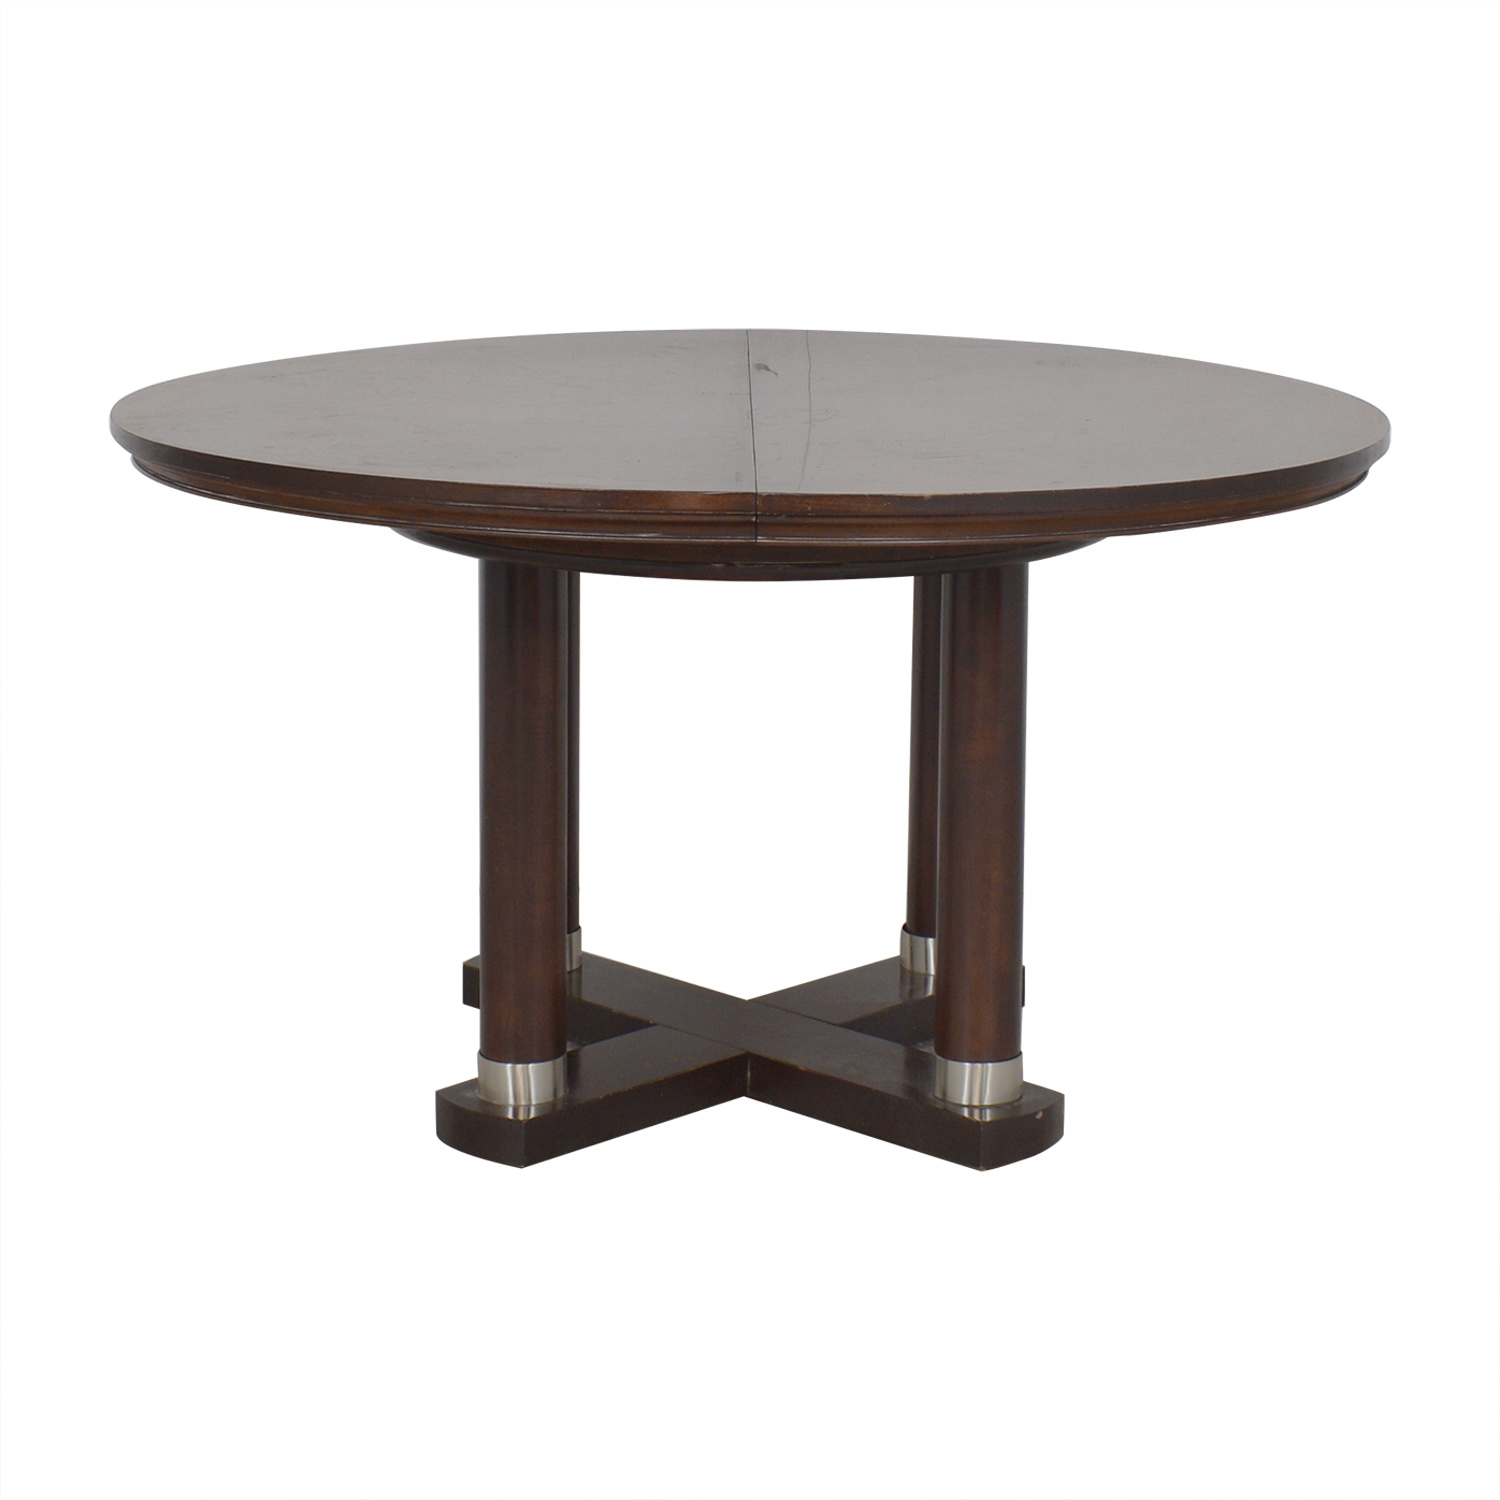 Lexington Furniture Lexington Furniture Round Dining Table for sale